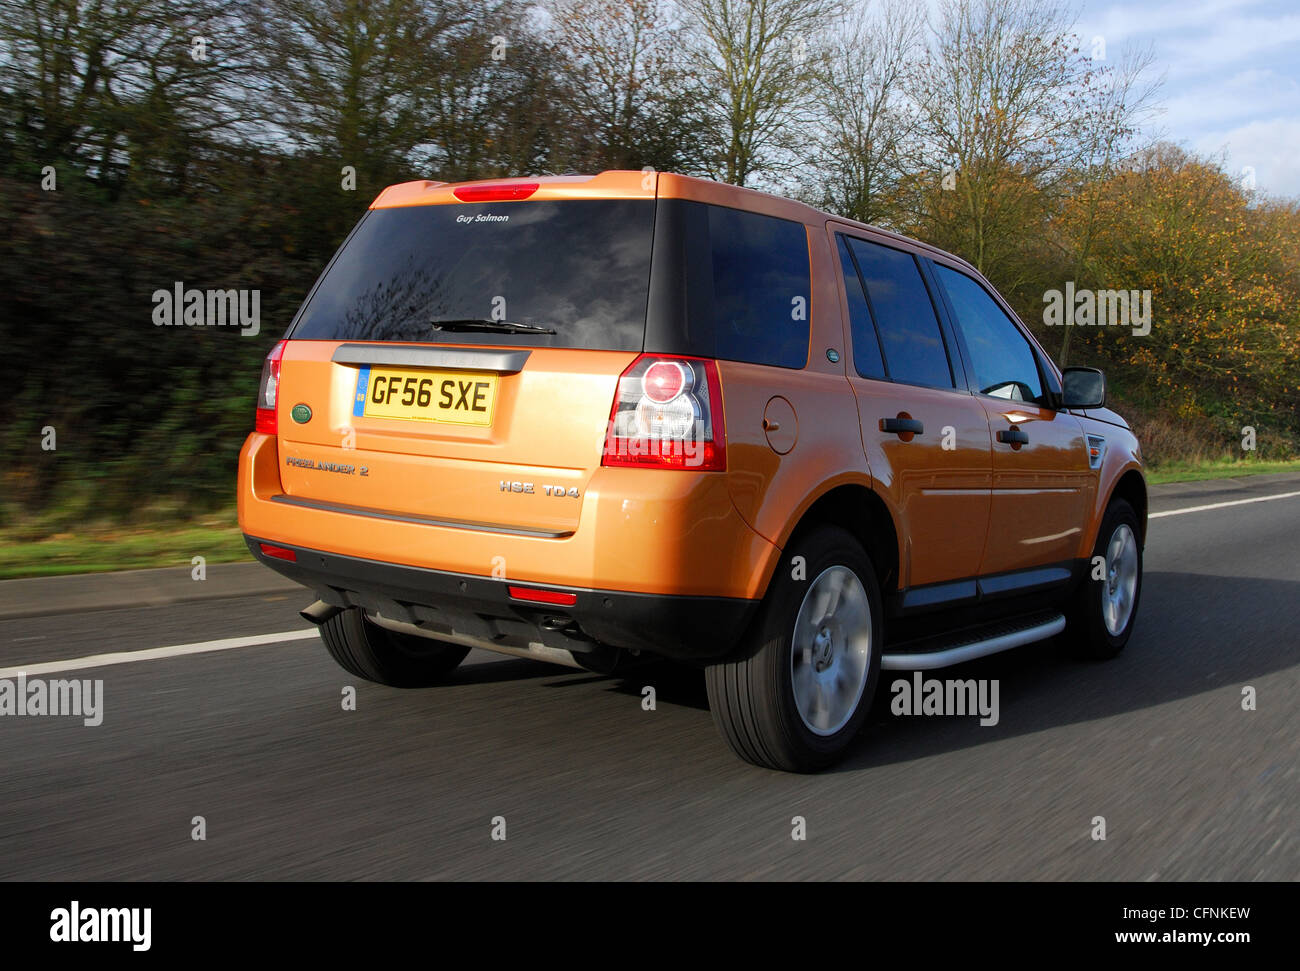 Land Rover Freelander 2 4x4 SUV off roader car driving action Stock Photo